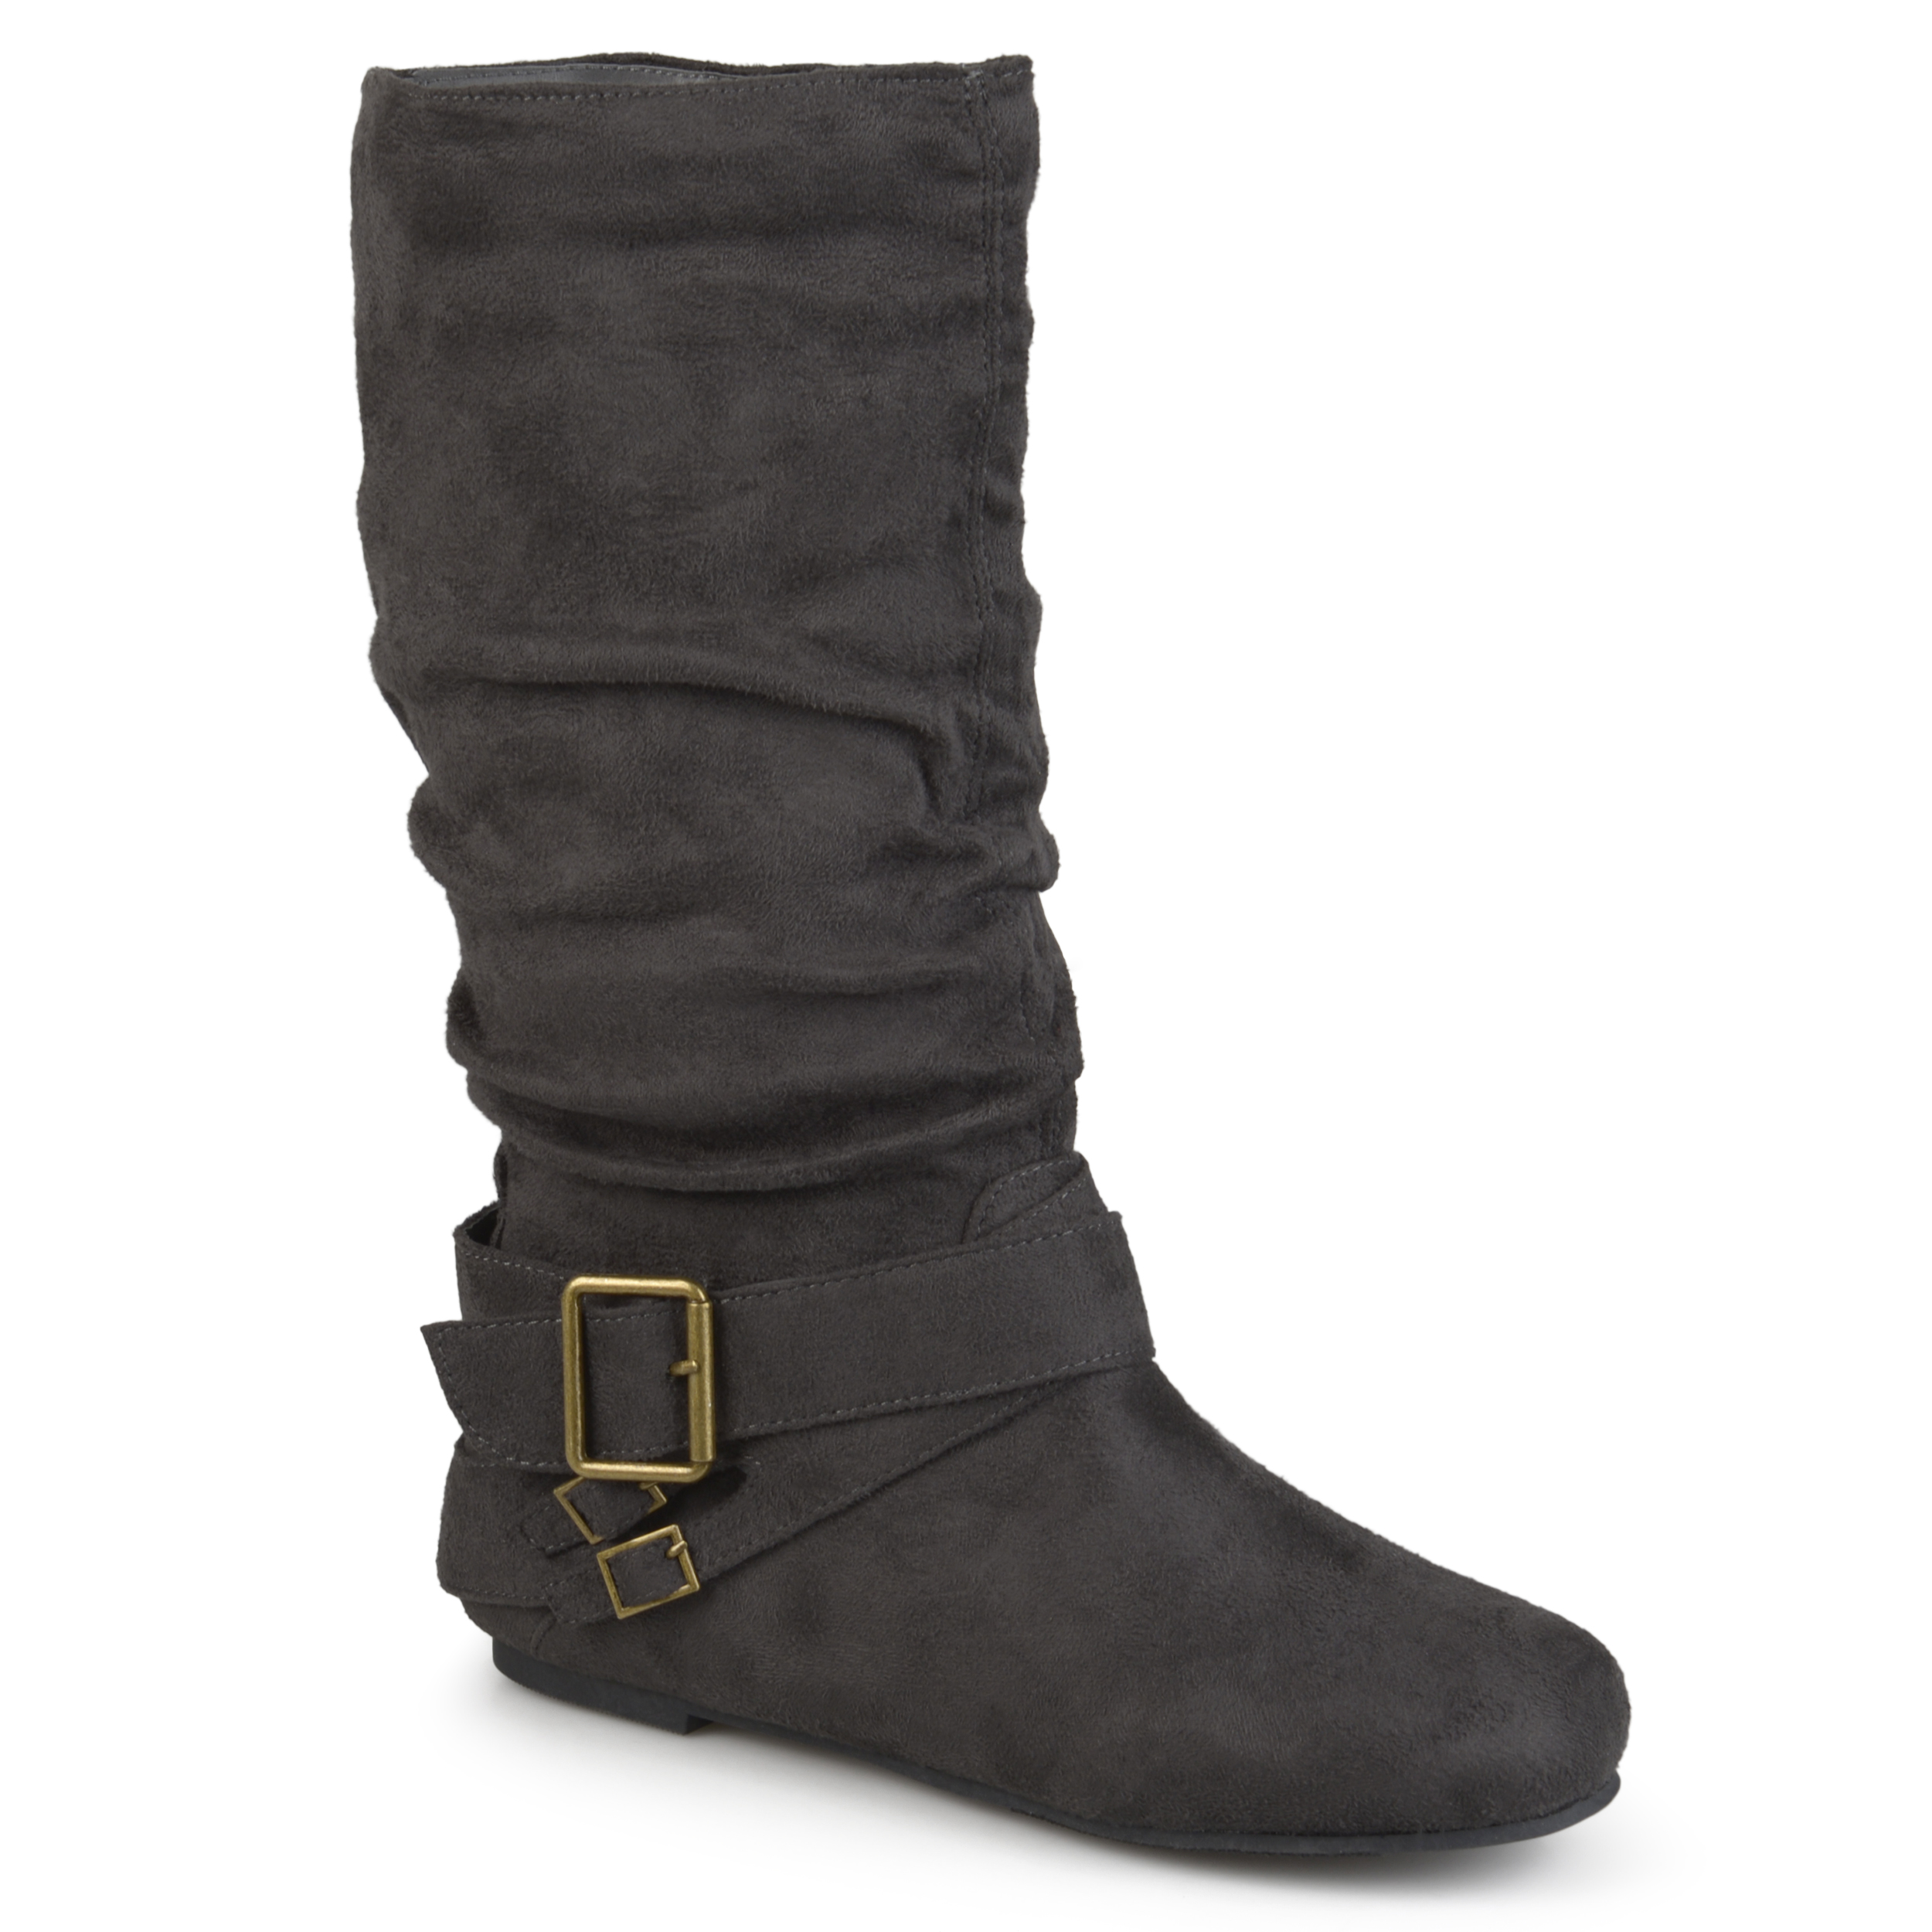 Adi Designs Glaze by Adi Slouchy Boot with Side Accent Buckles at Sears.com